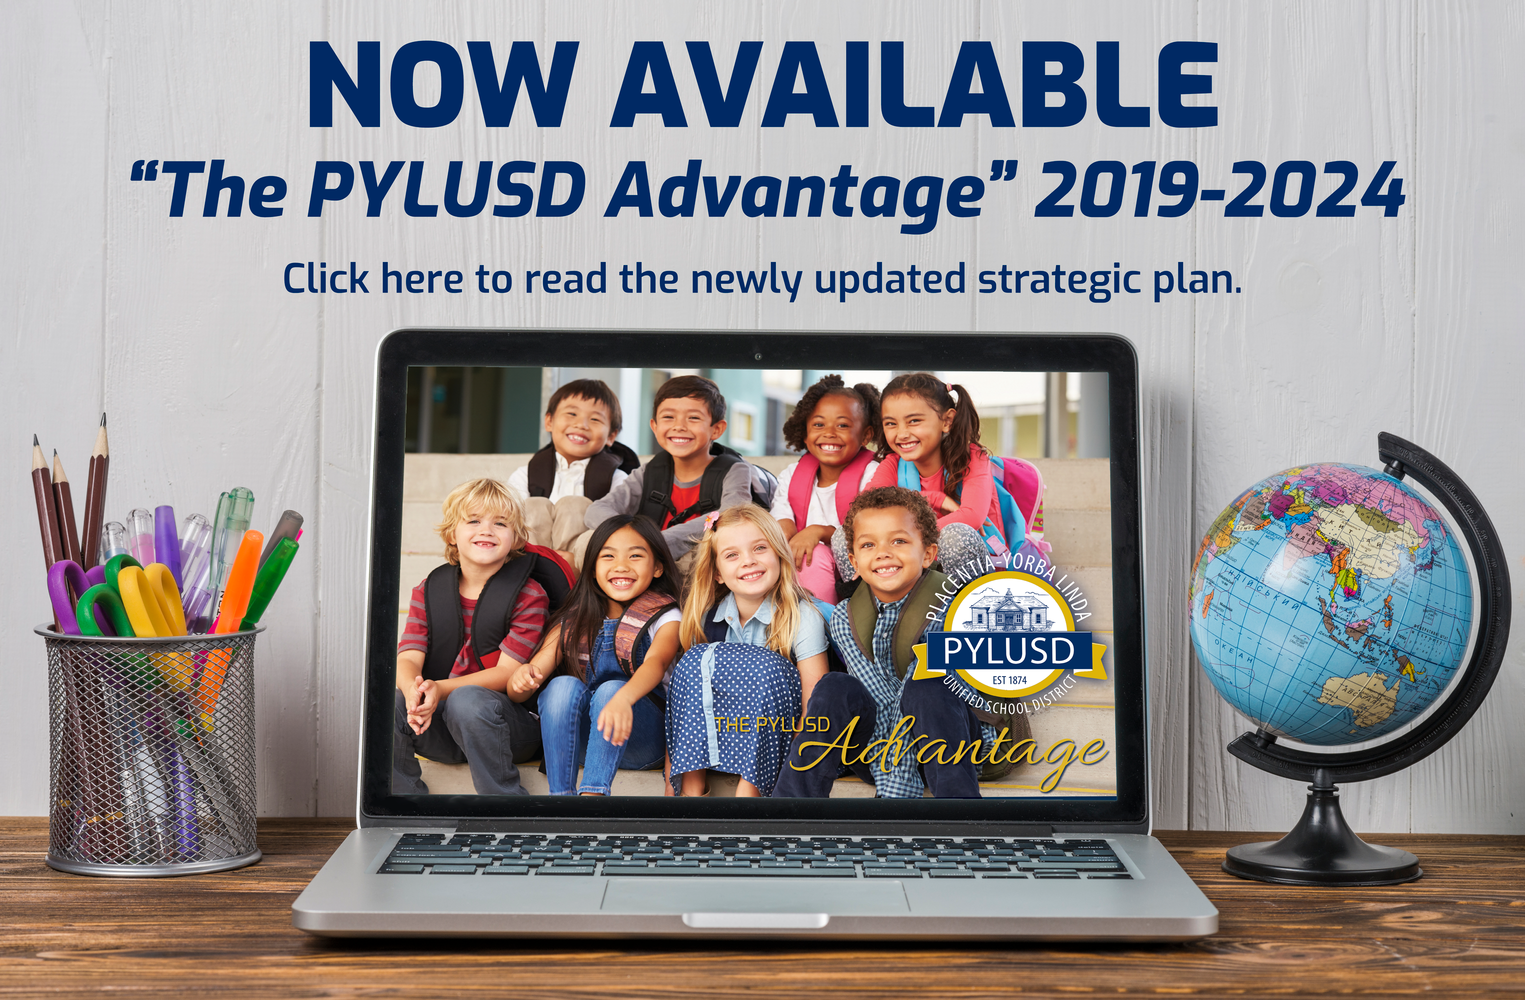 The PYLUSD Advantage is now available. Visit www.pylusd.org/advantage to see.